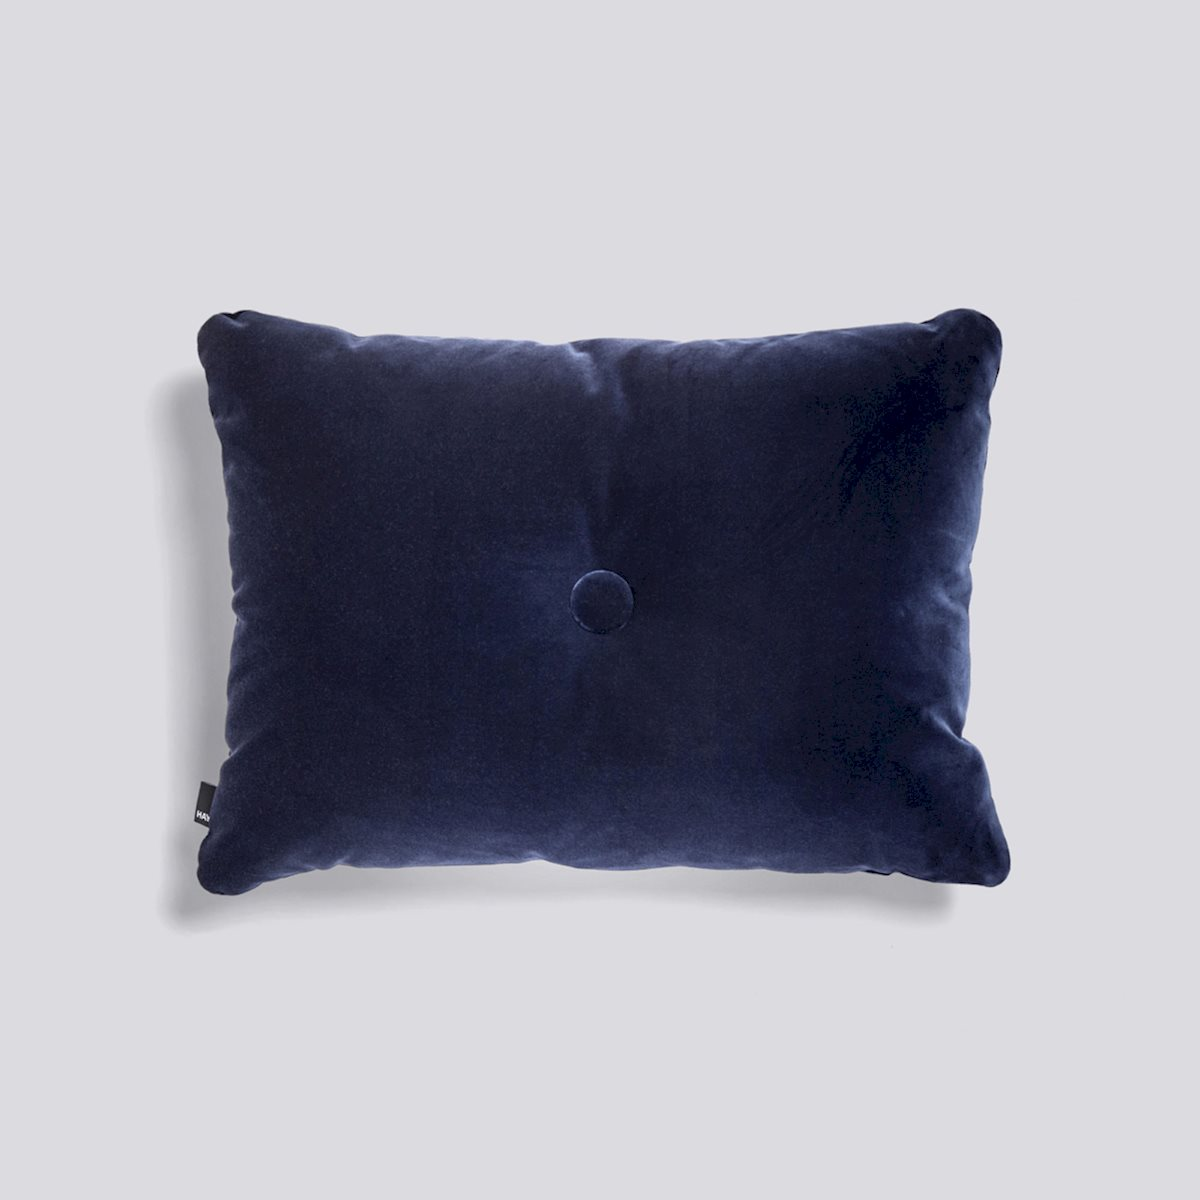 507298zzzzzzzzzzzzzz_dot-cushion-1-dot-soft-navy_1220x1220_brandvariant